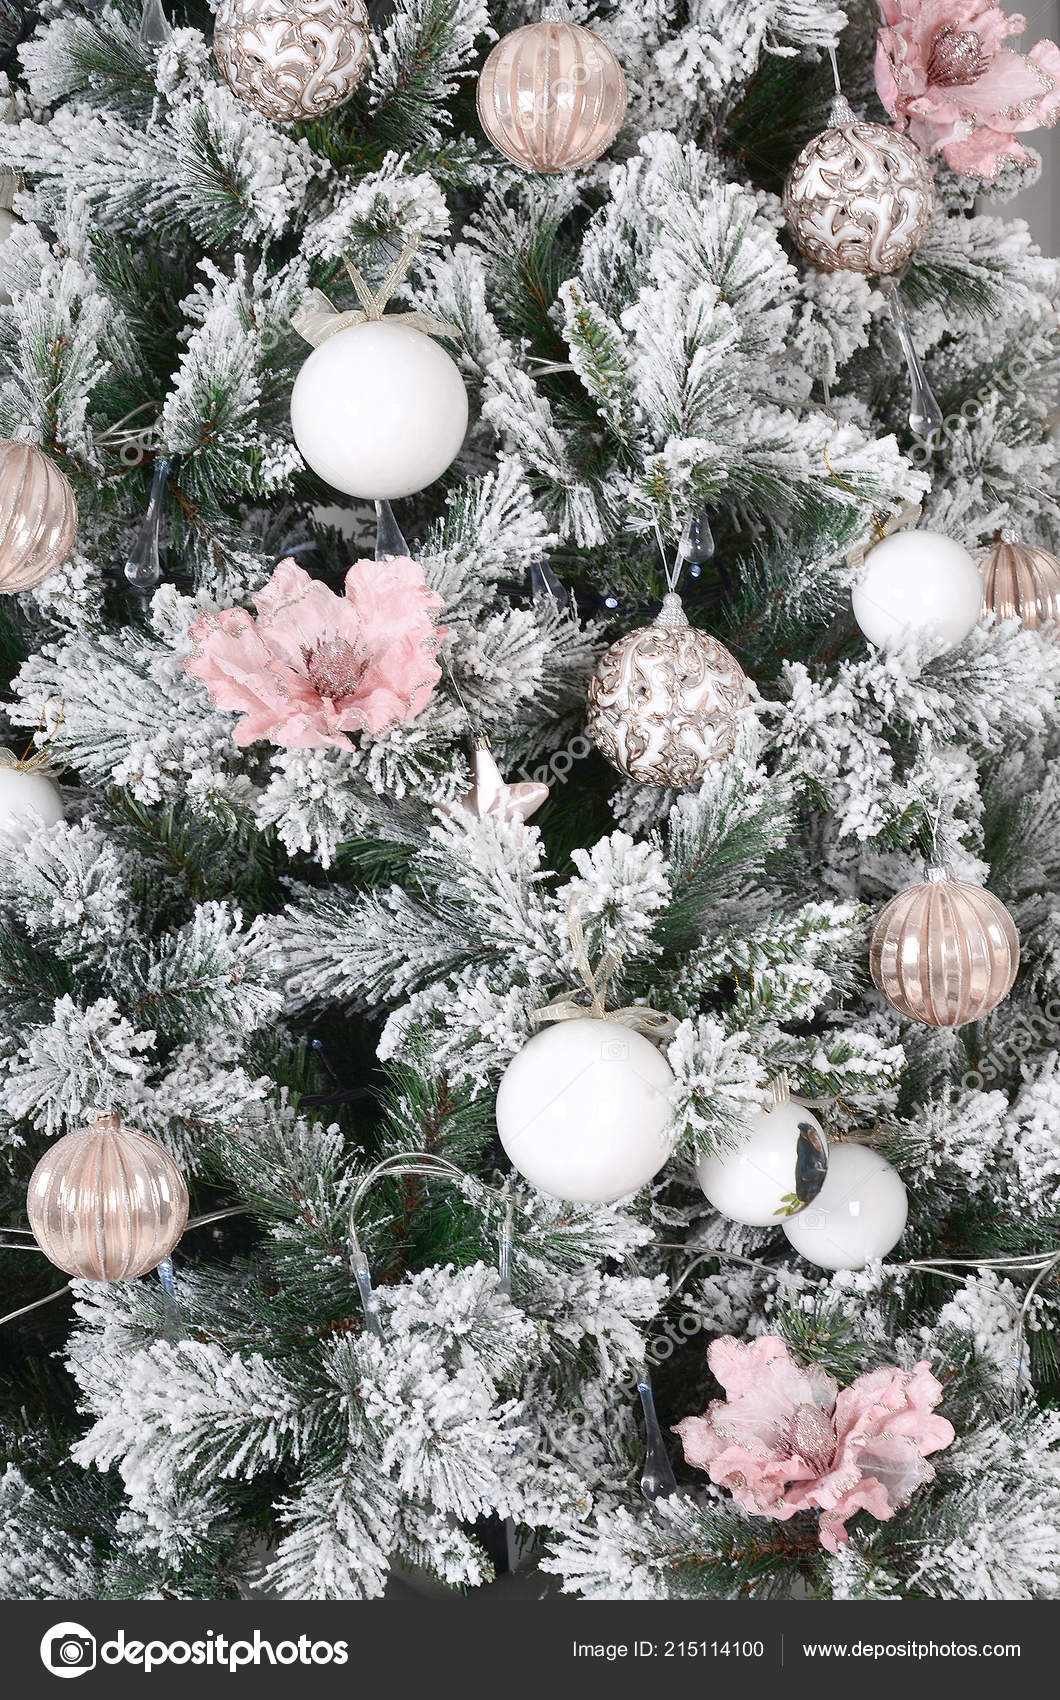 Decorating Christmas Tree Close Decoration Bulb Snowy Green Fir Tree Stock Photo Image By C Mehaniq 215114100